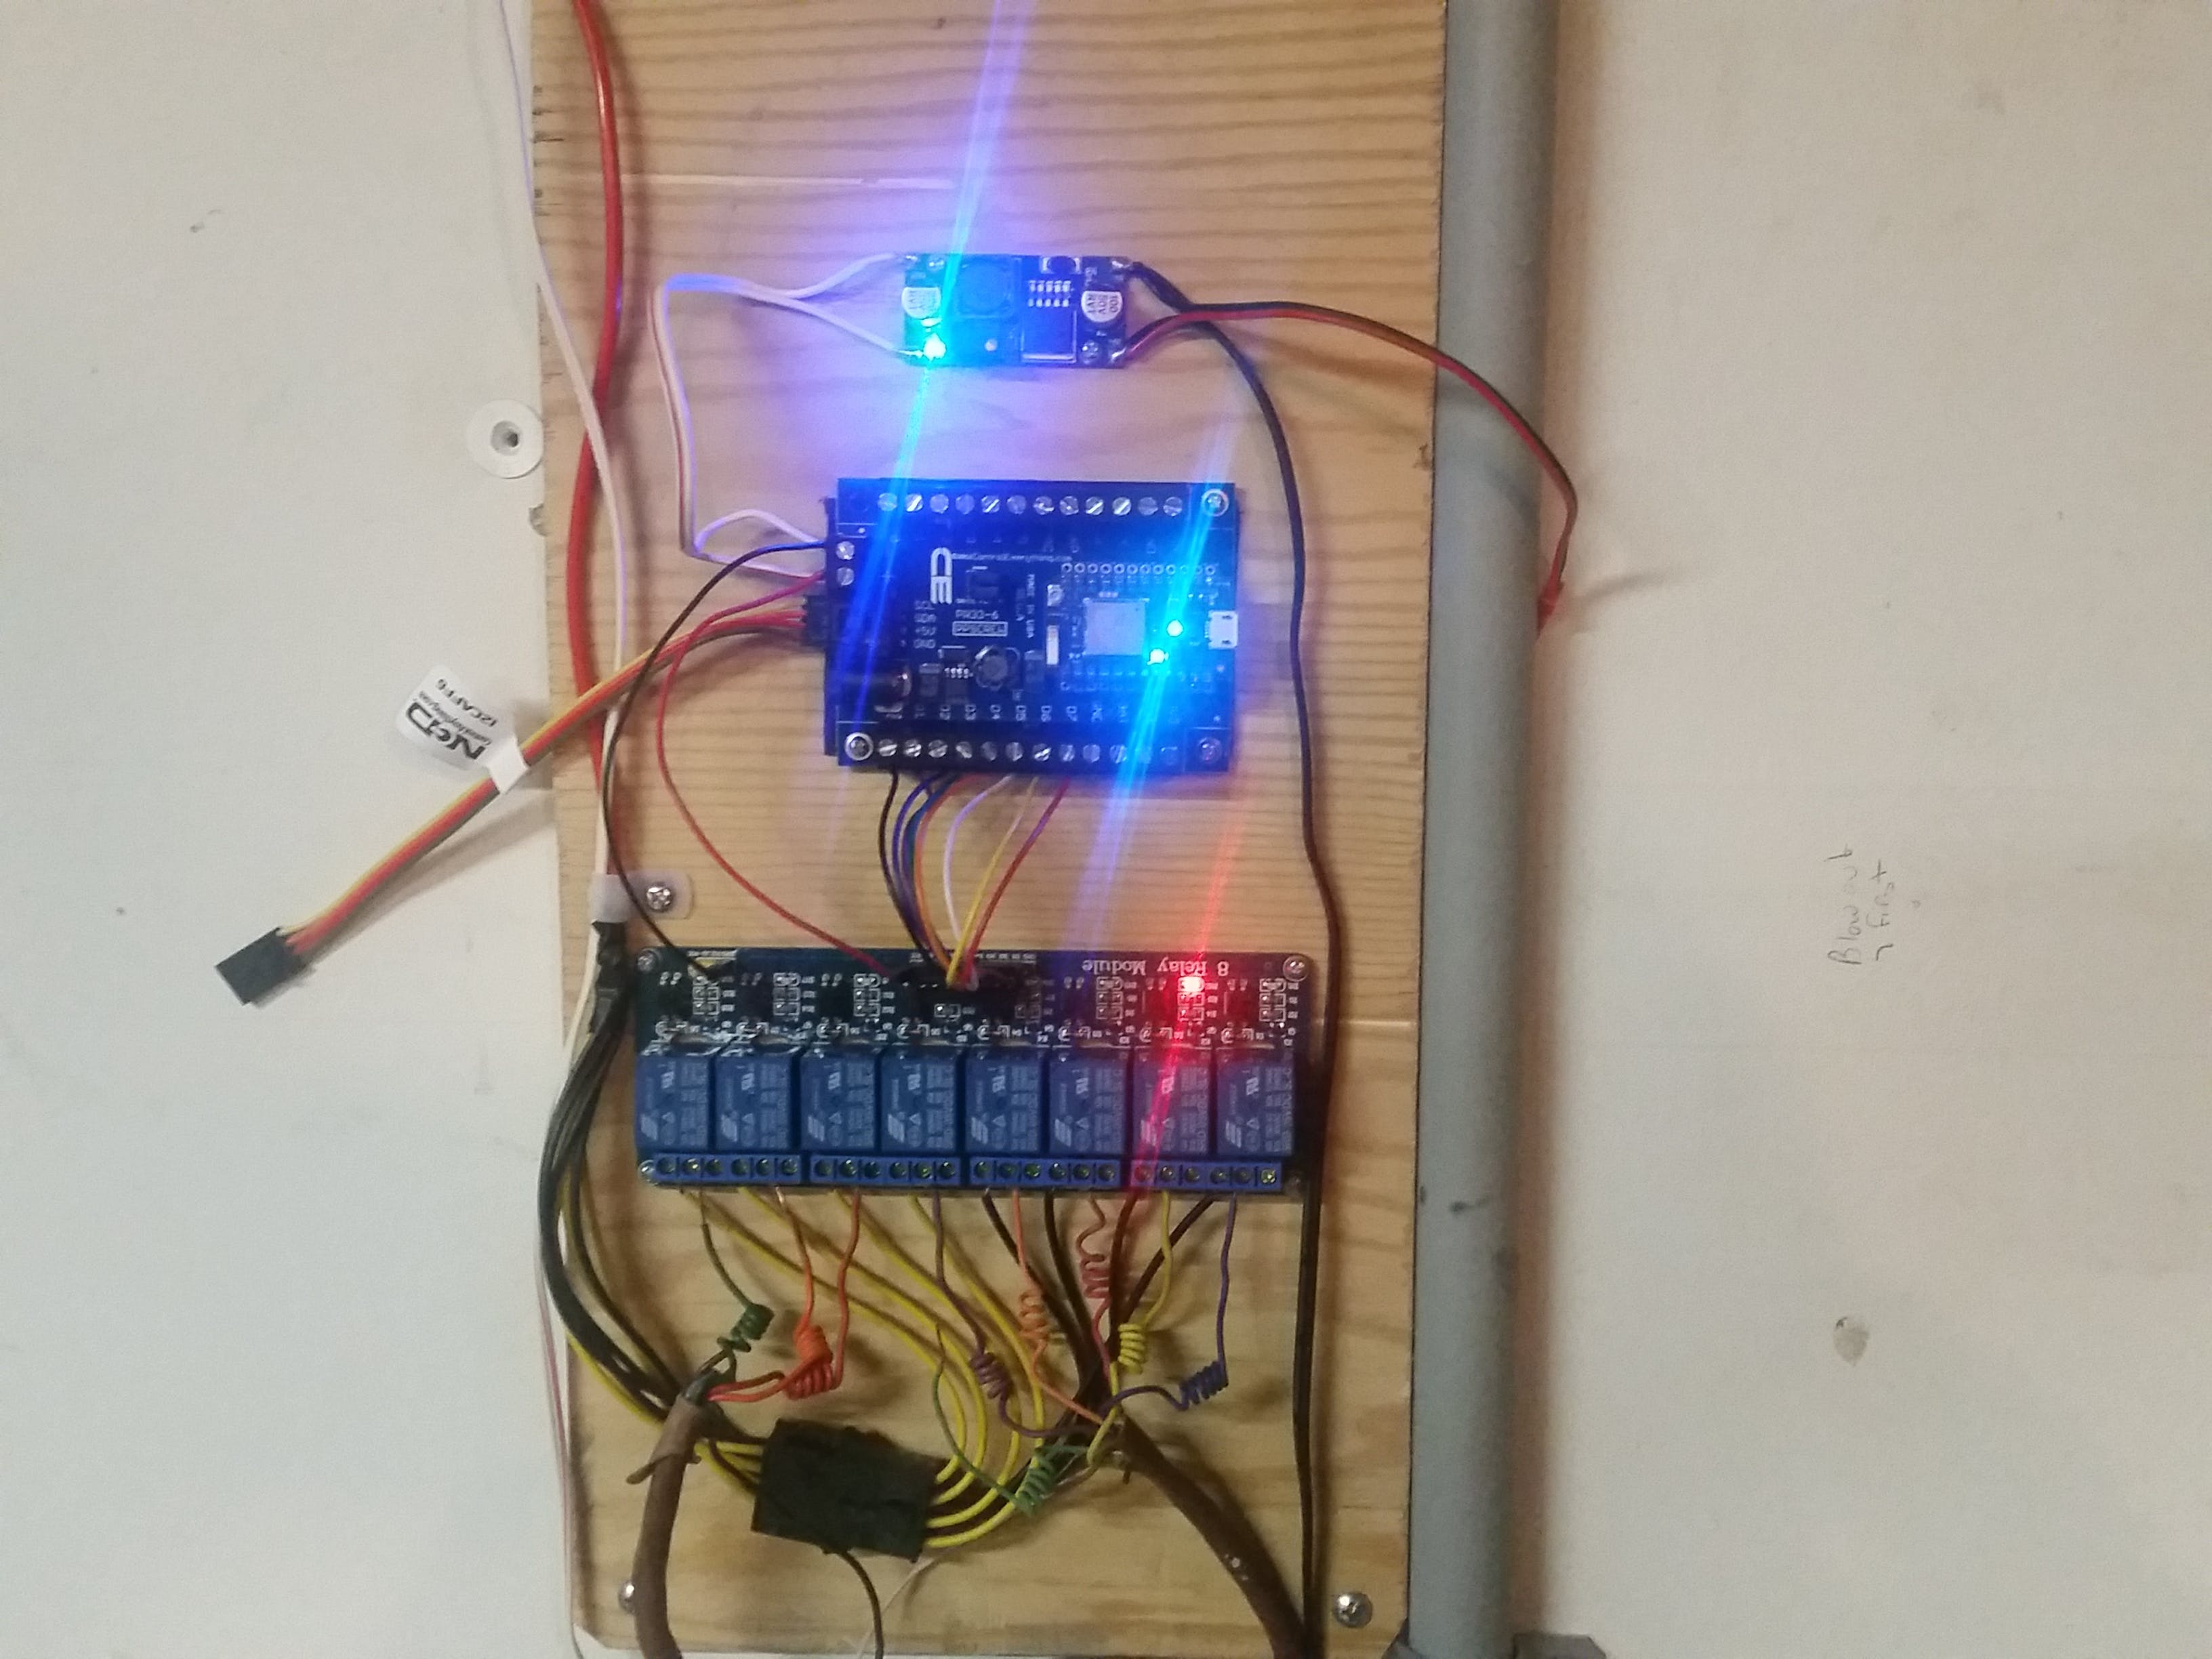 Updated setup with PARTICLE PHOTON I2C SHIELD instead of the bread board.